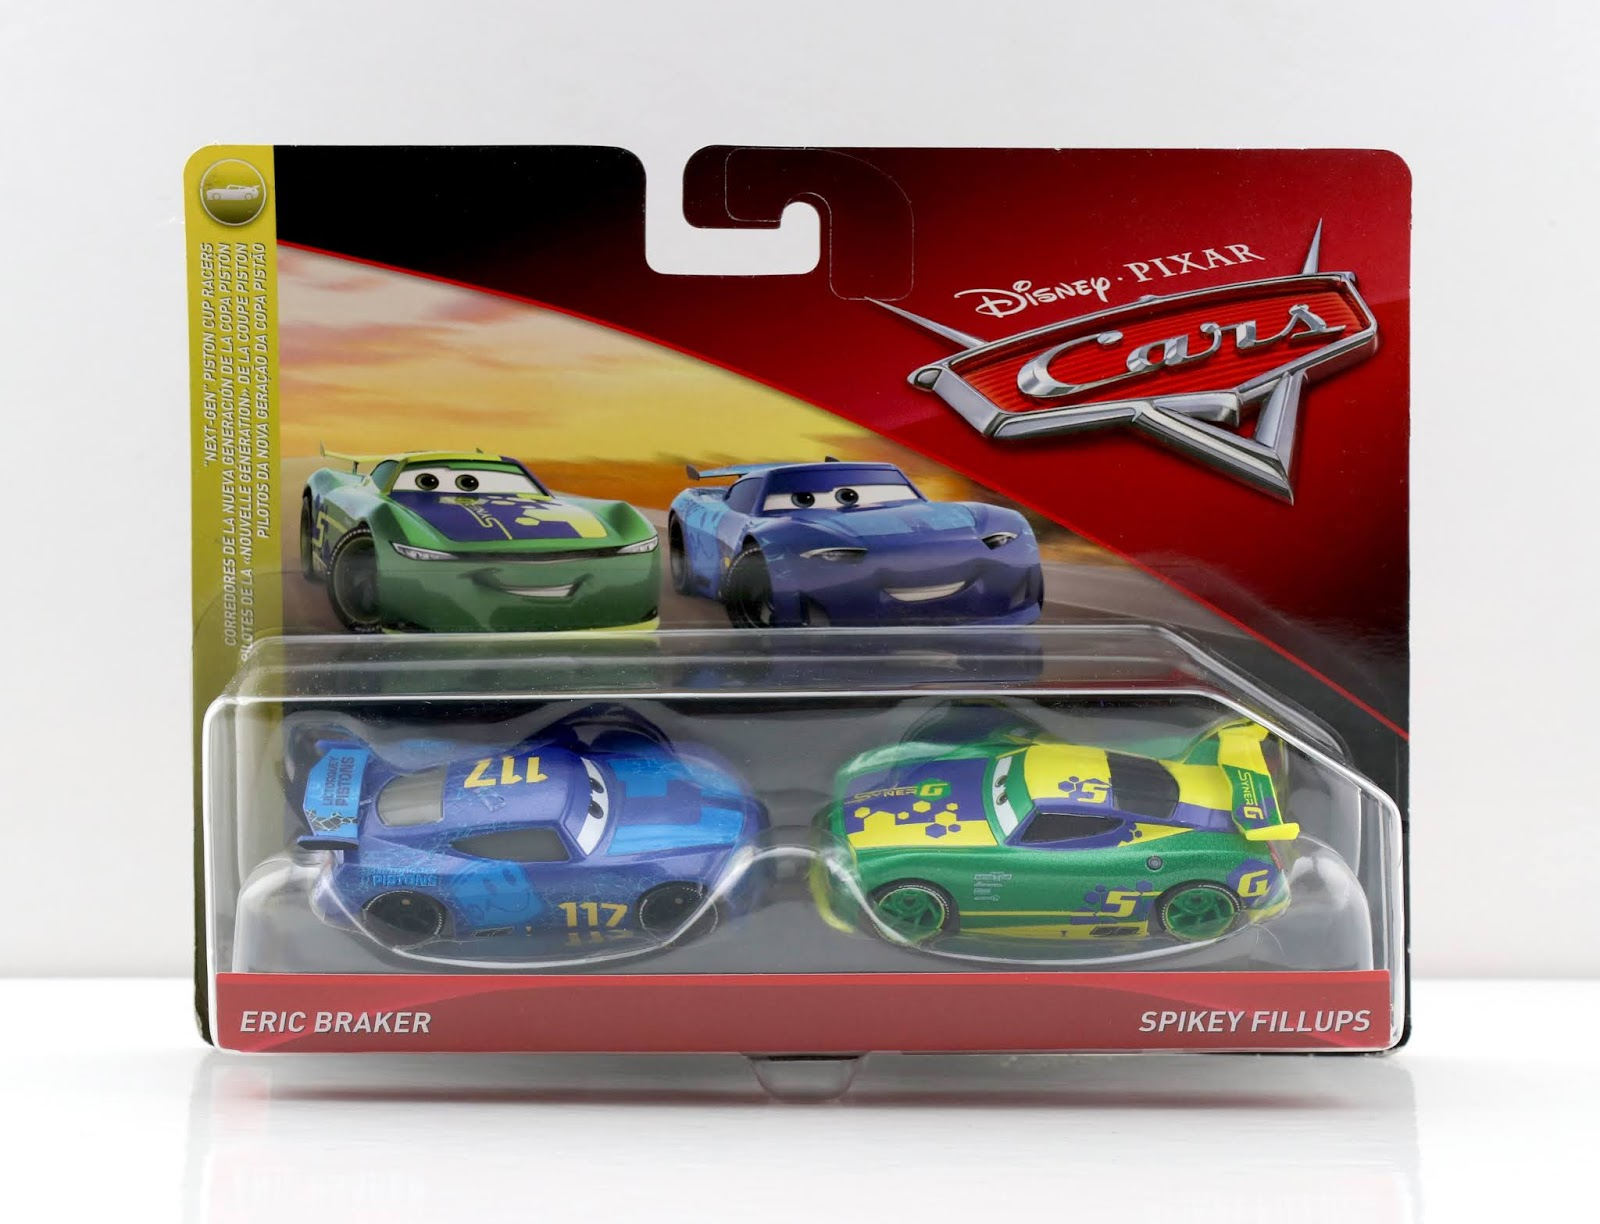 cars Eric Braker & Spikey Fillups 2-Pack